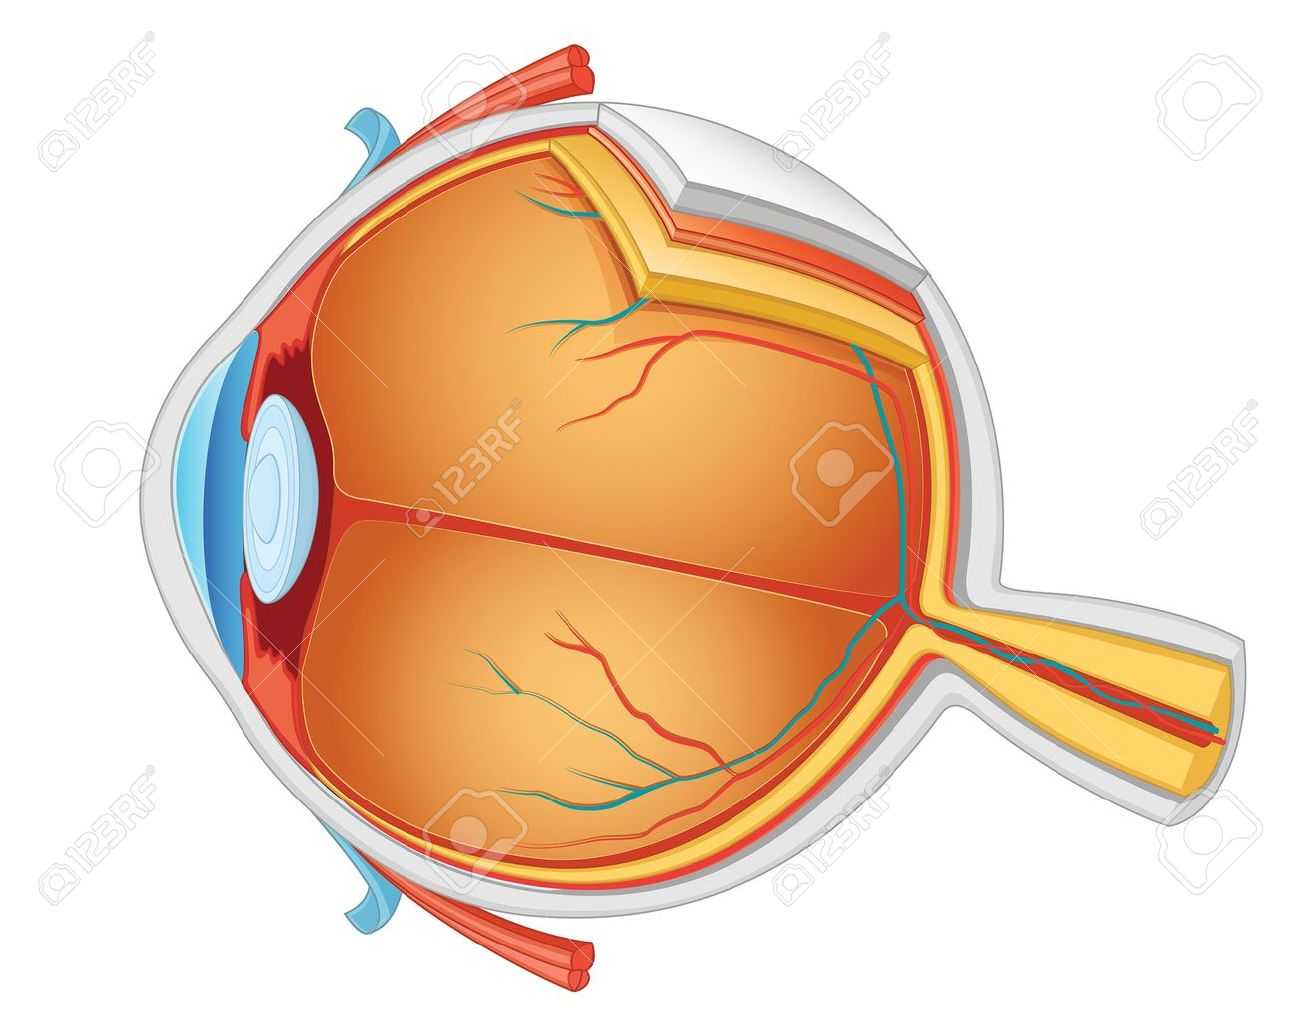 Eye Anatomy Vector Illustration Royalty Free Cliparts, Vectors, And ...